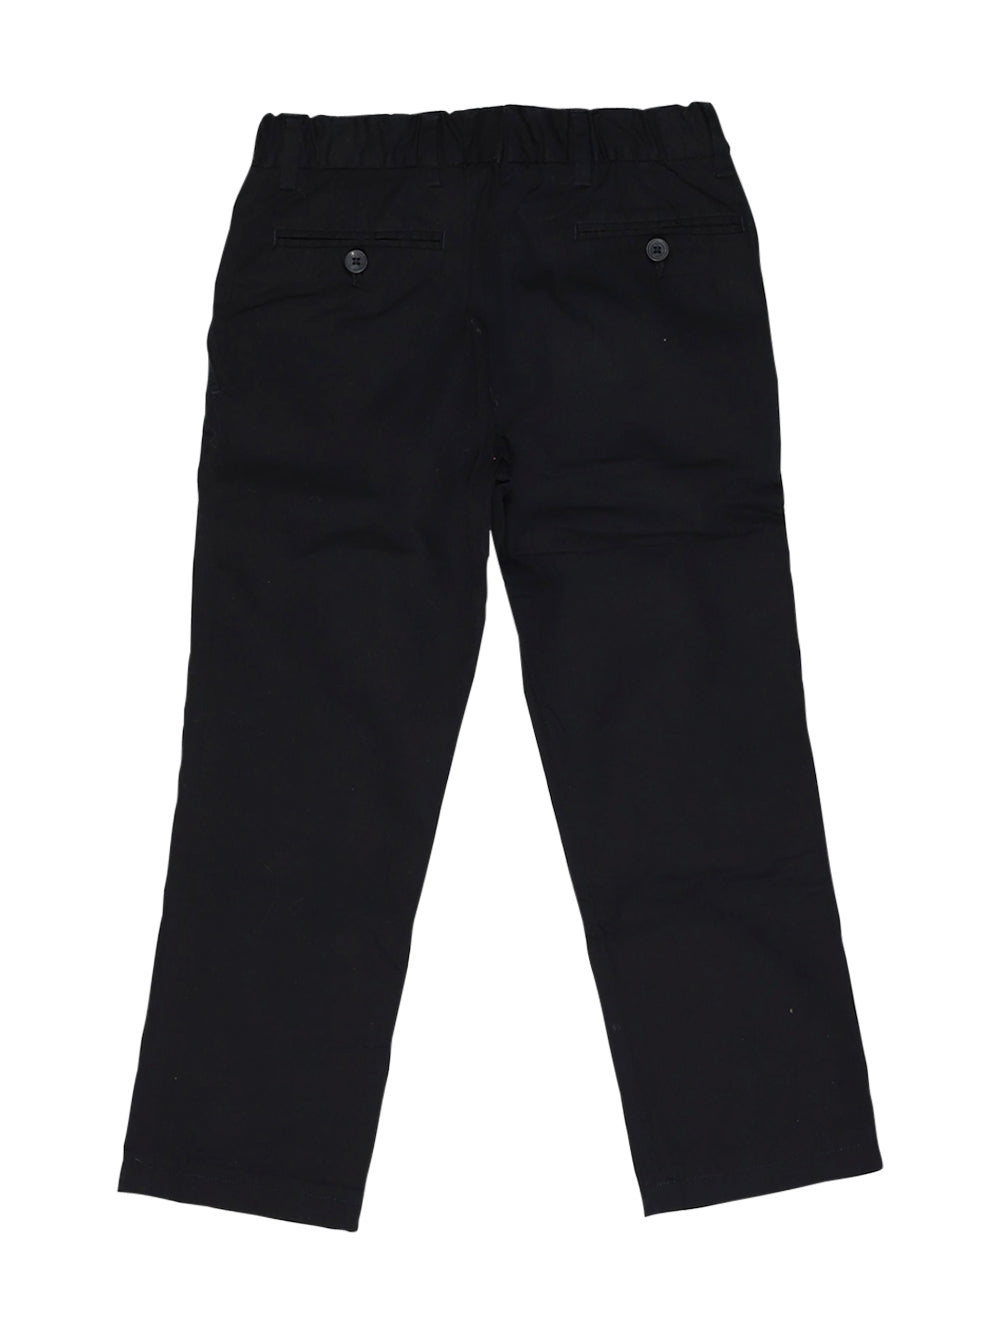 Back photo of Preloved Calvin Klein Blue Boy's trousers - size 5-6 yrs